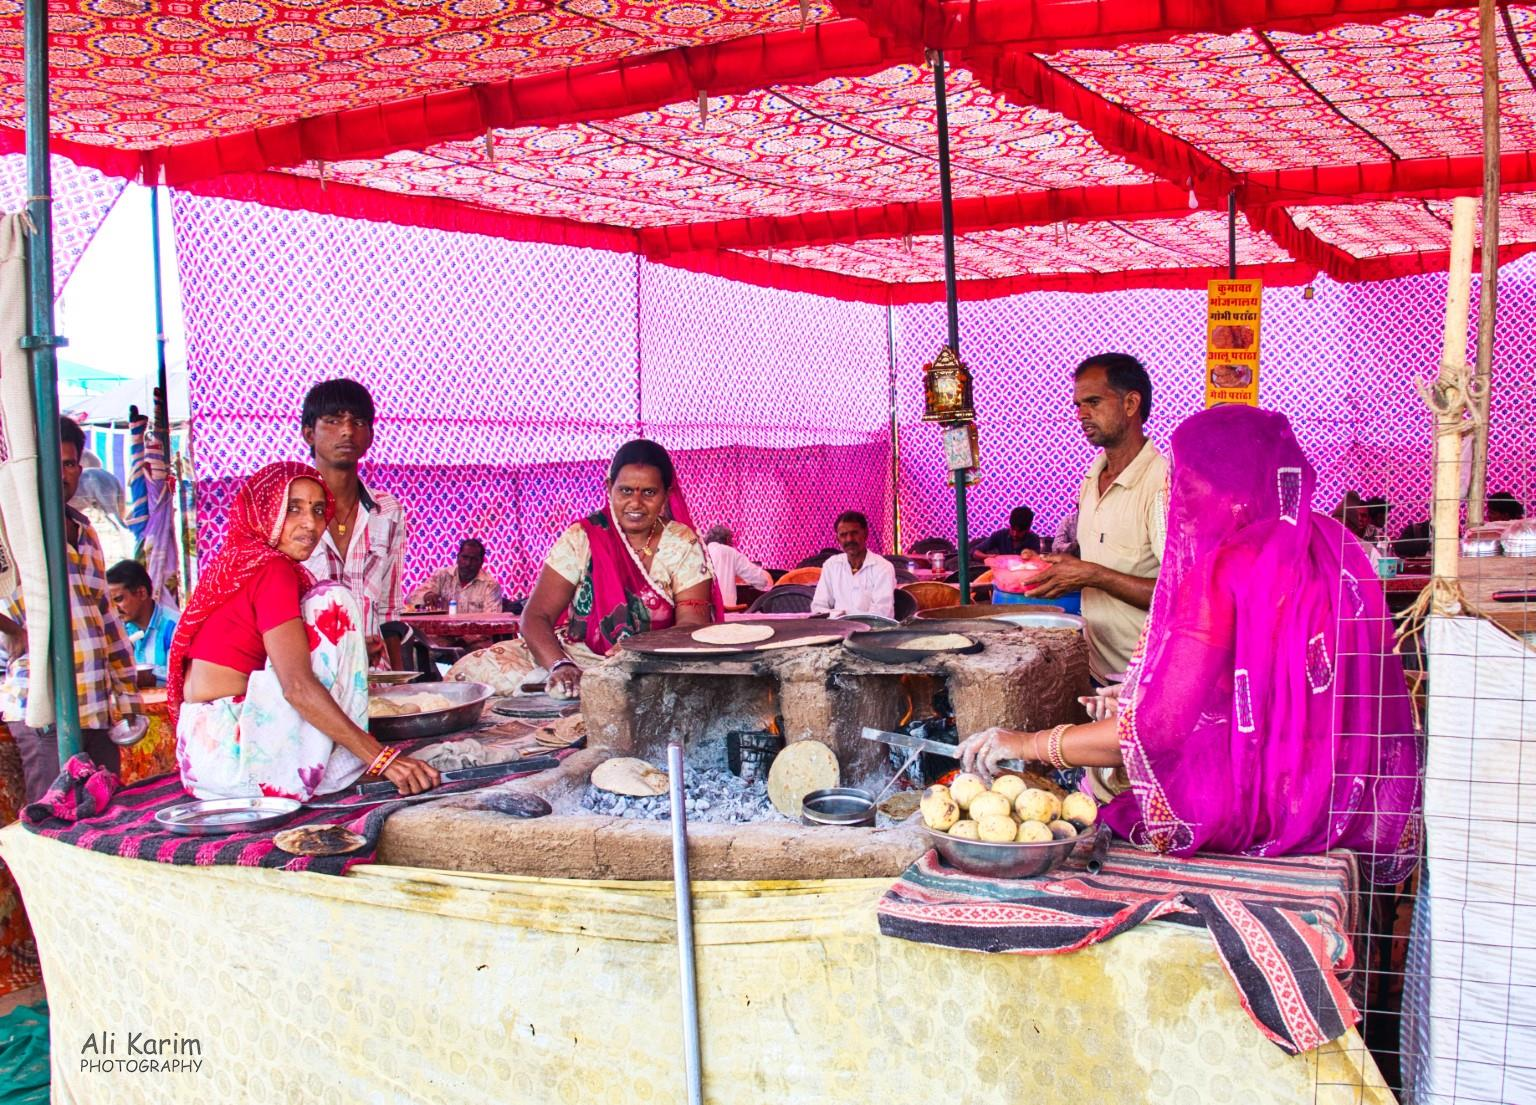 Pushkar, Rajasthan Food stall, with ladies making the typical Baati wheat balls, and baajra roti